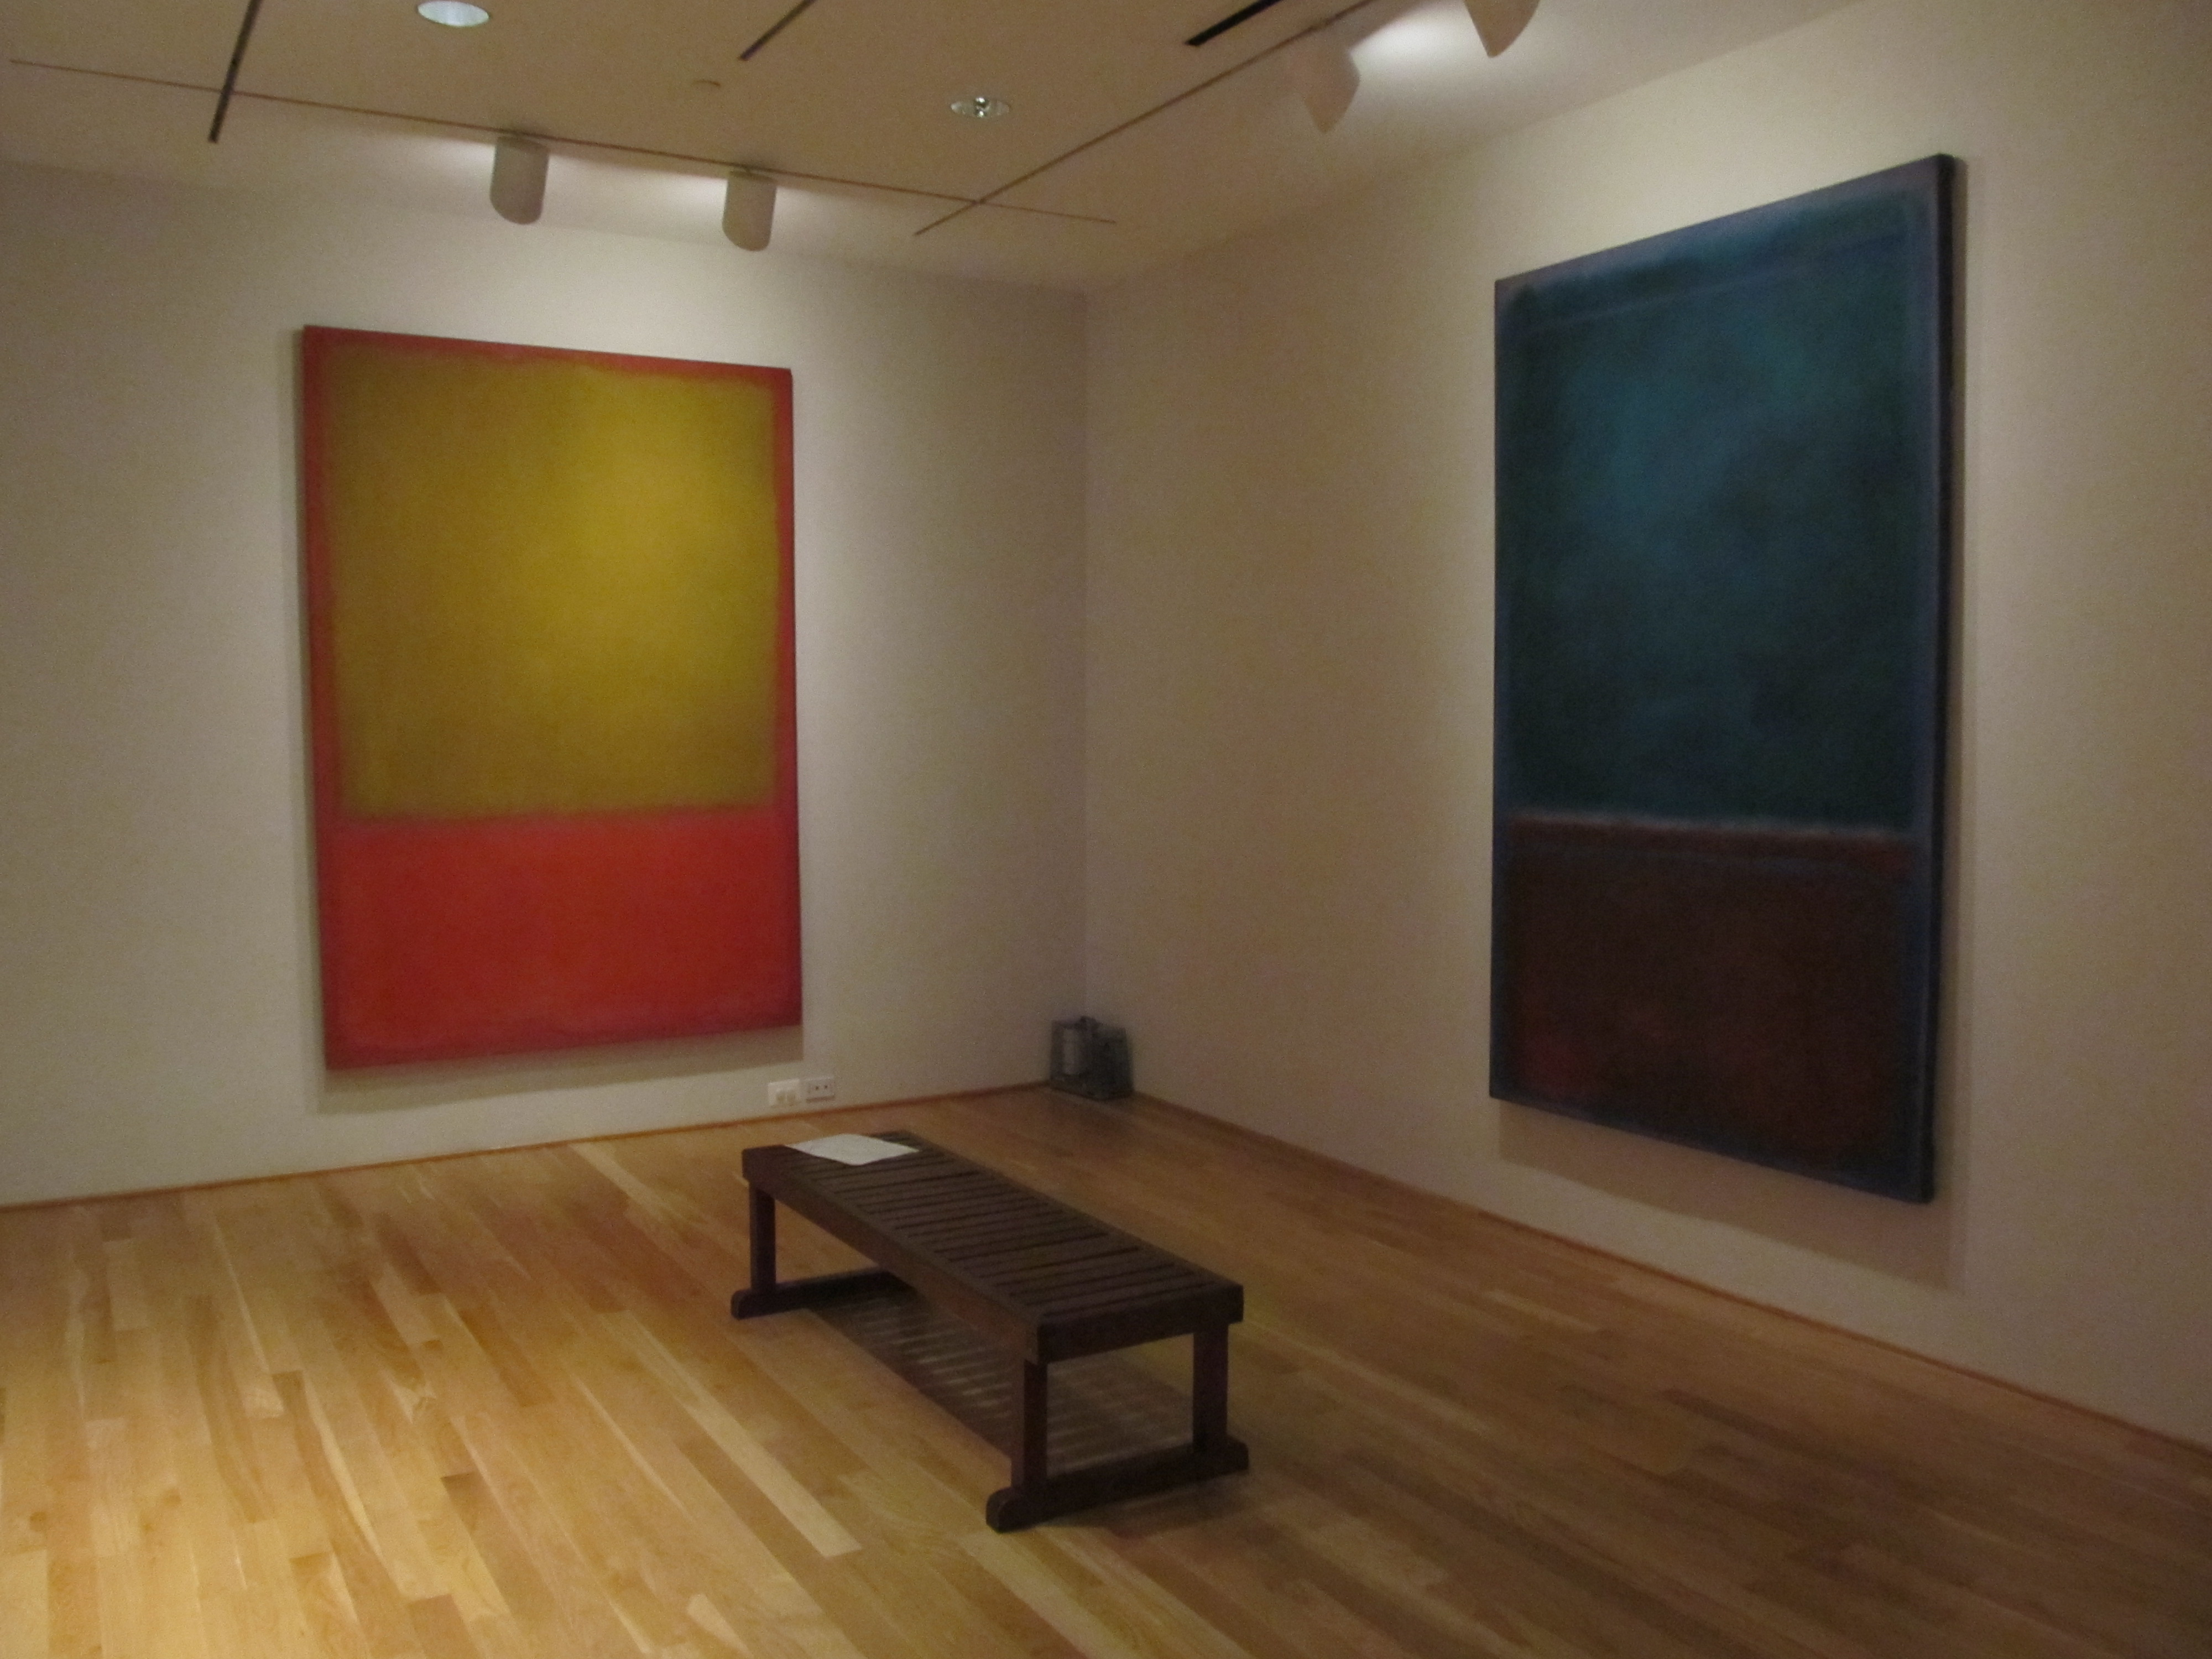 Rothko denies a desire to enchant  He only invites reflection  the weather  his colors create can be ominous  Frequently it is just vaguely troubled. RED  Return to the Rothko Room   The Making of RED